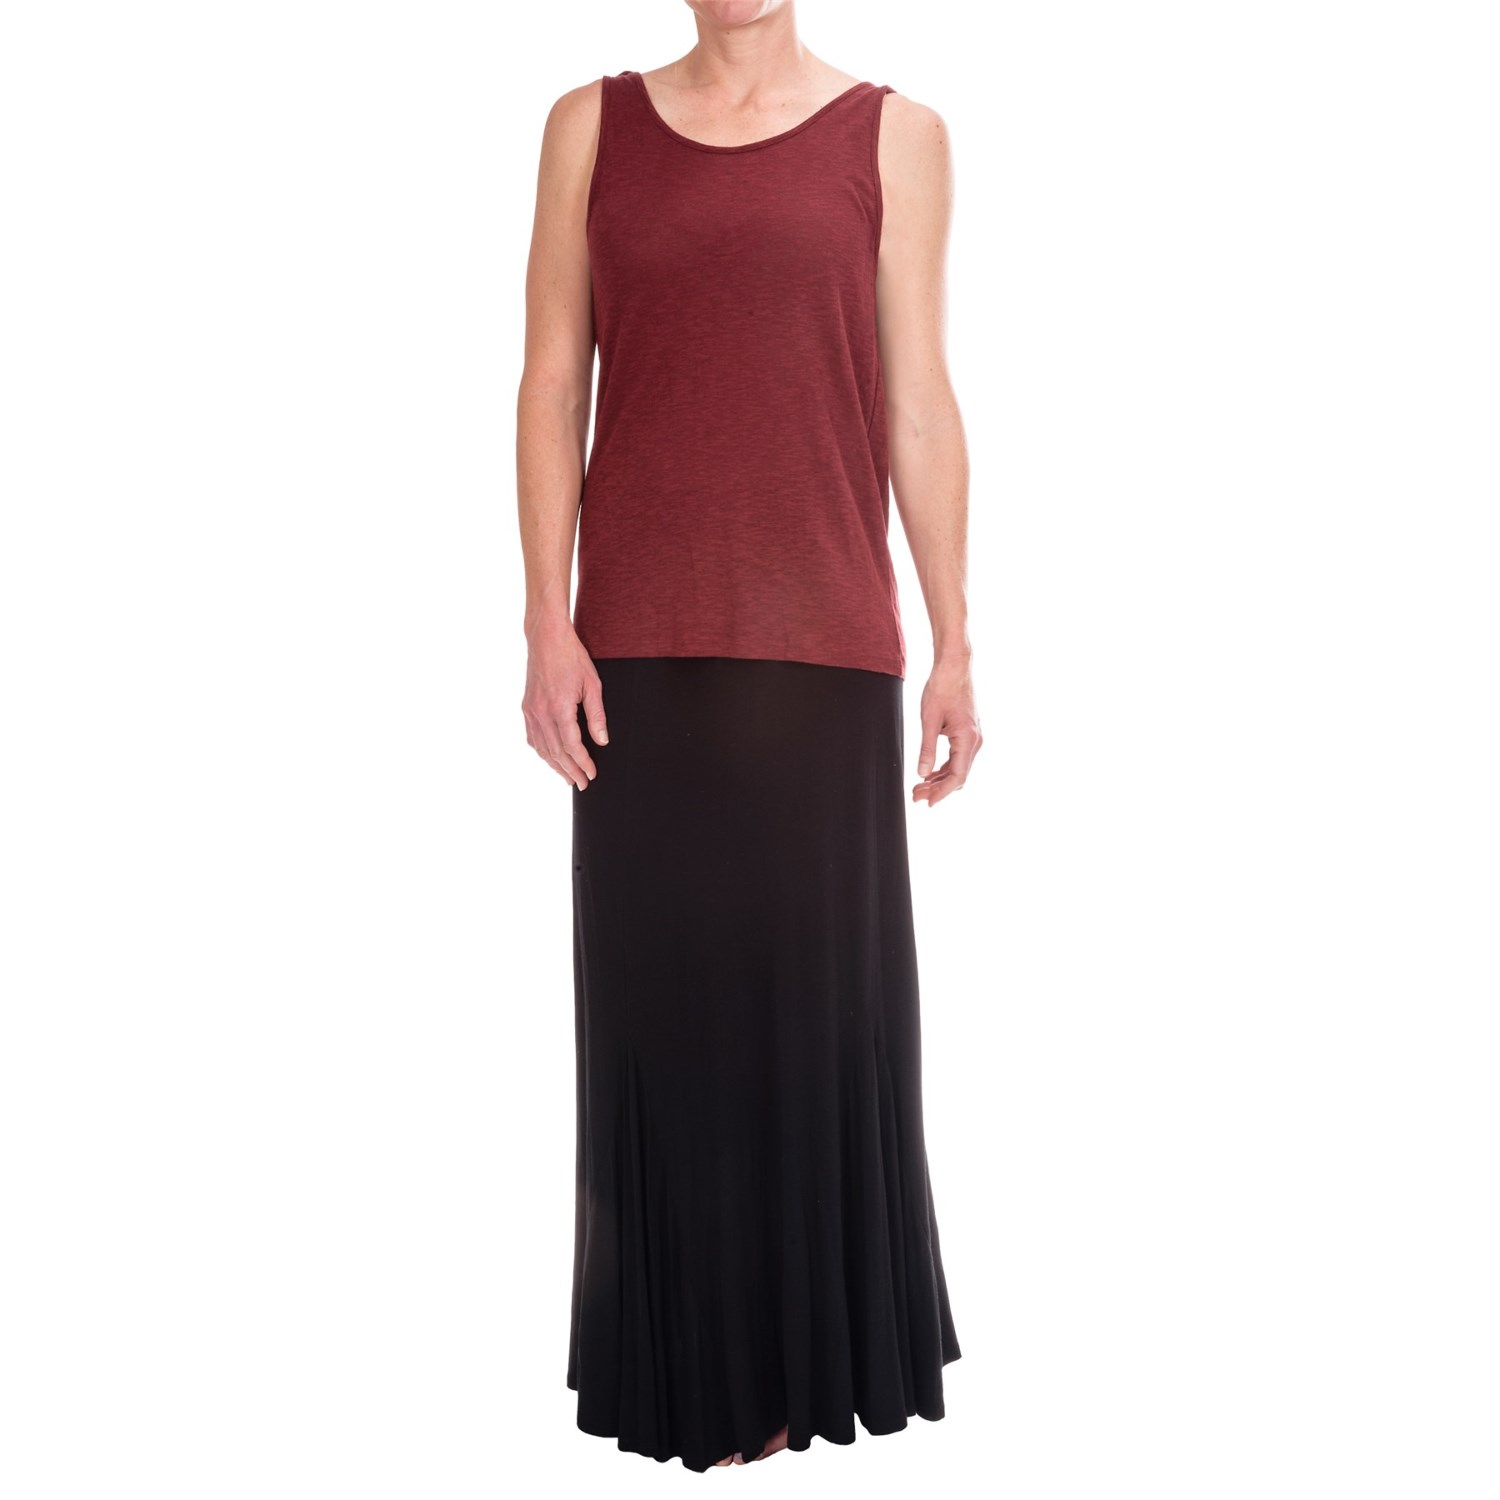 stretchy knit maxi skirt for 9071d save 61